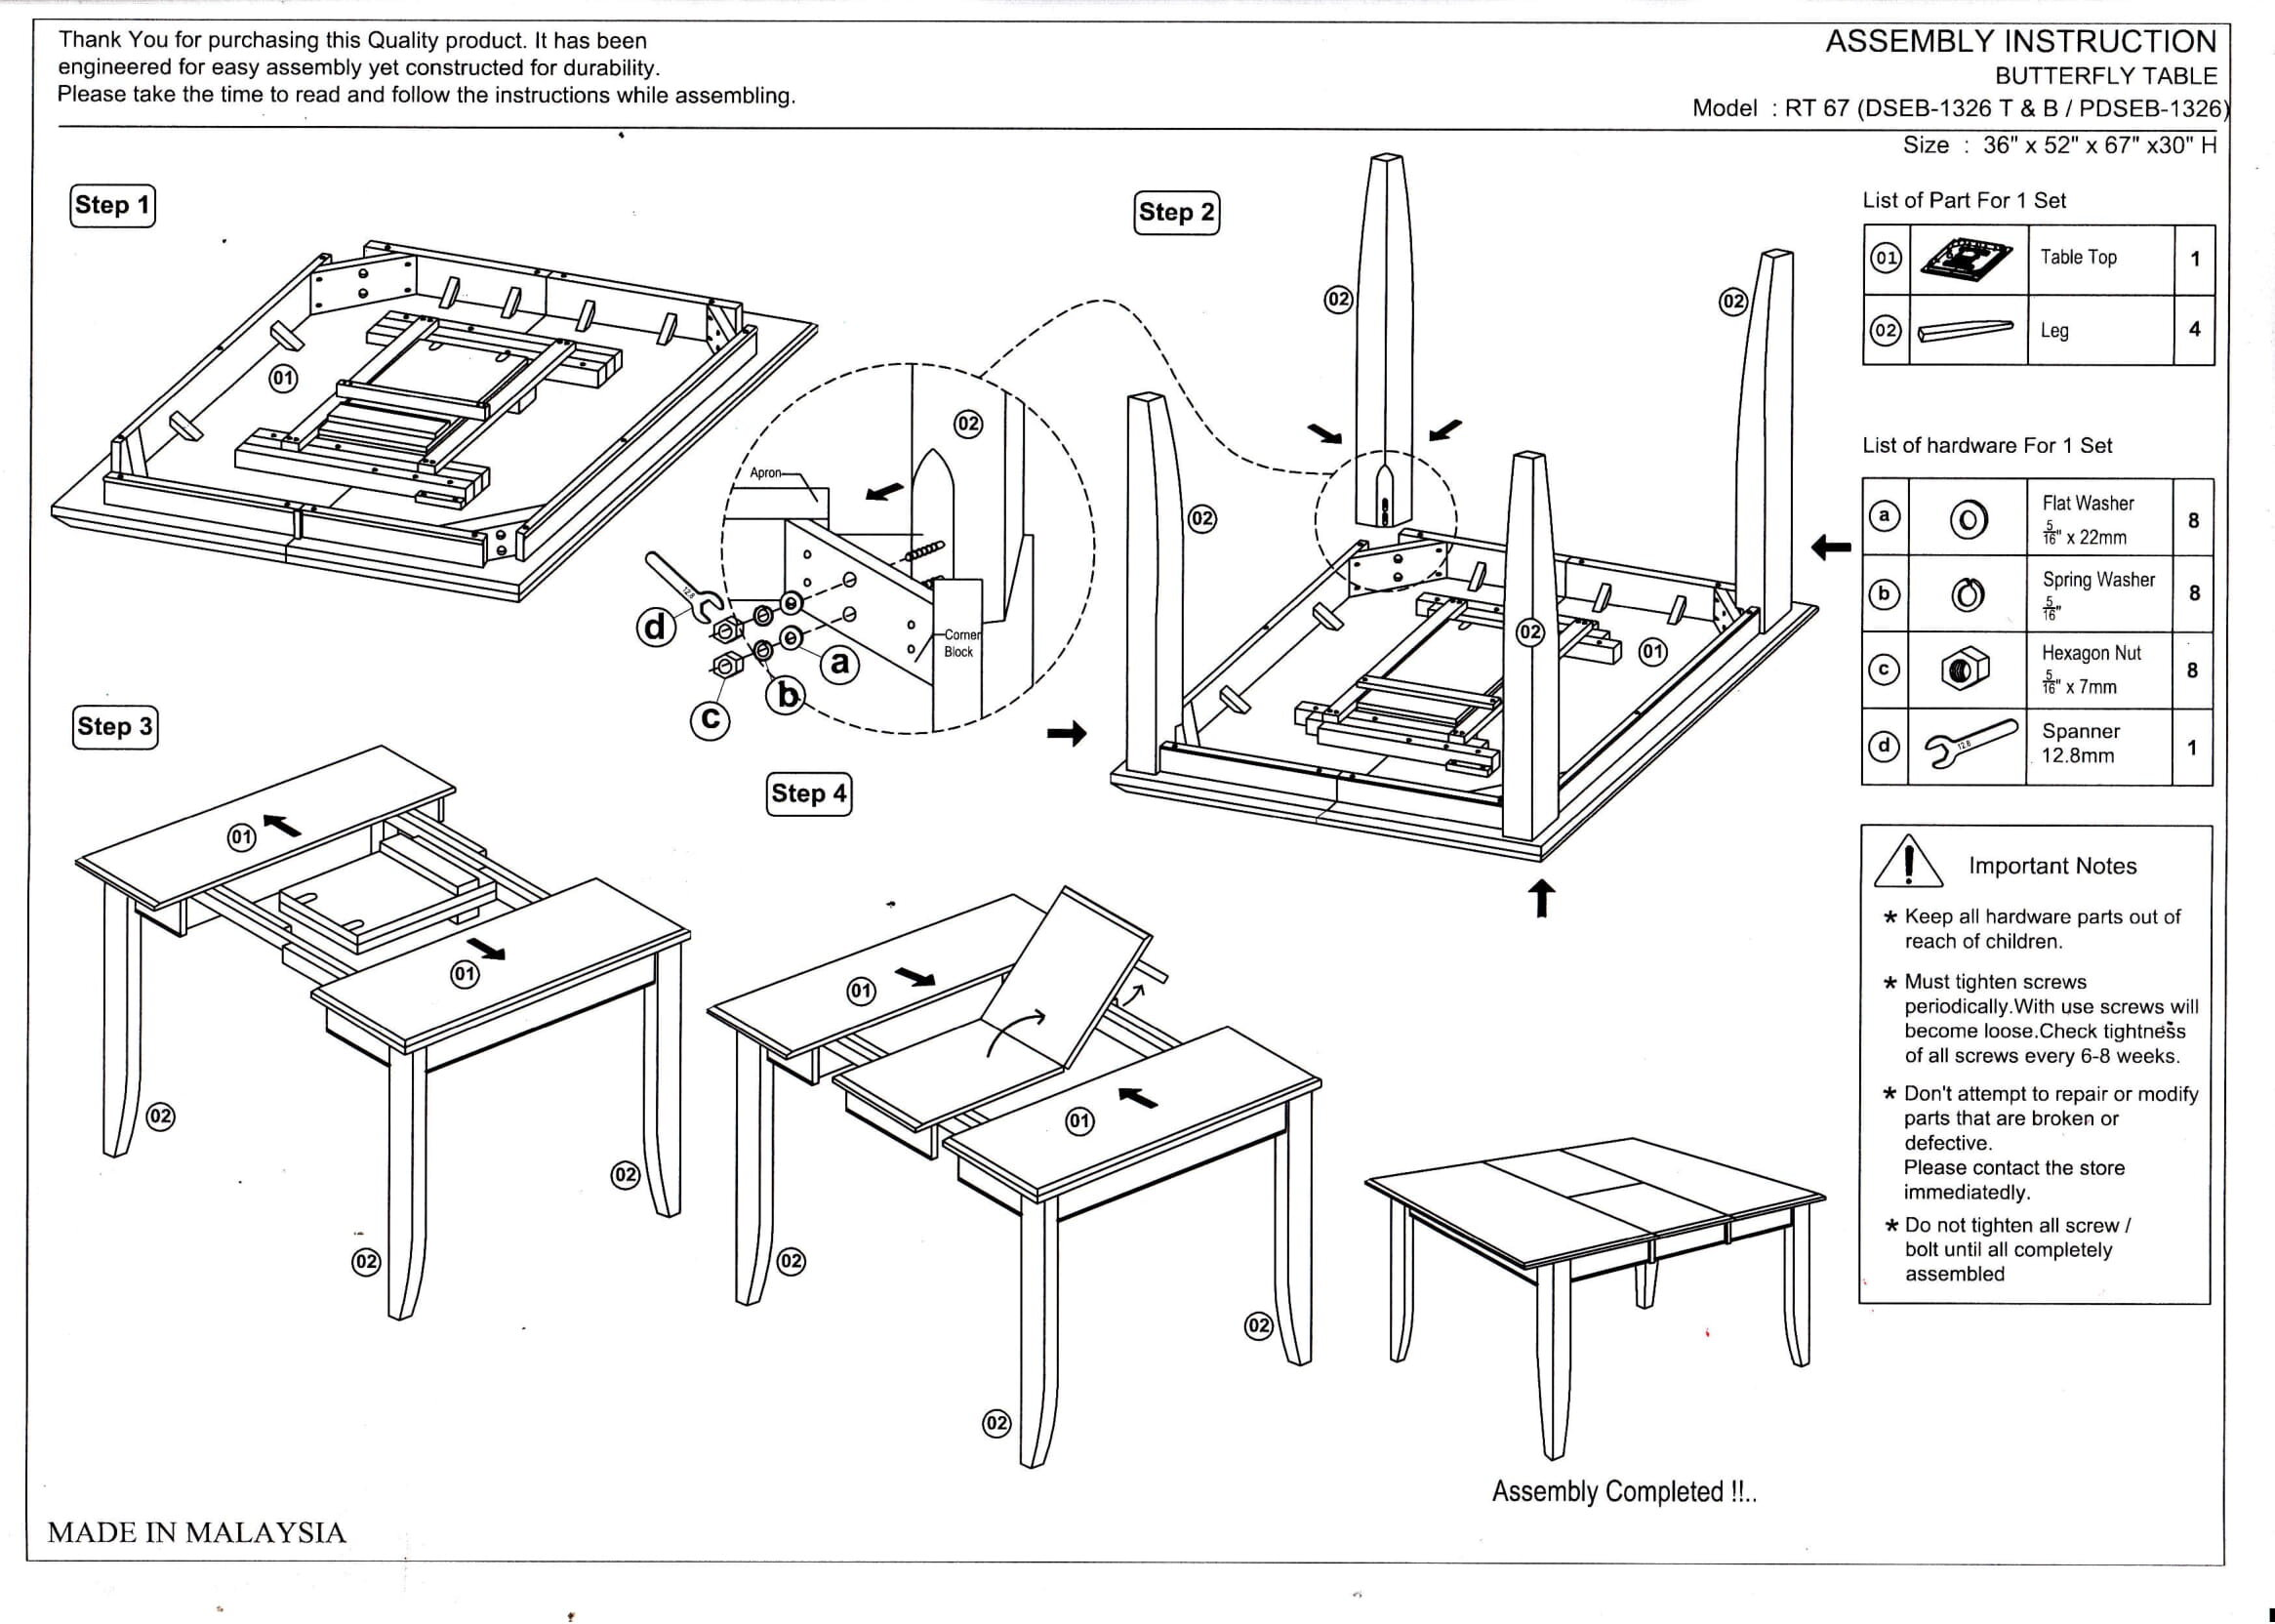 AI  RT67 ASSEMBLY INSTRUCTION-1.jpg